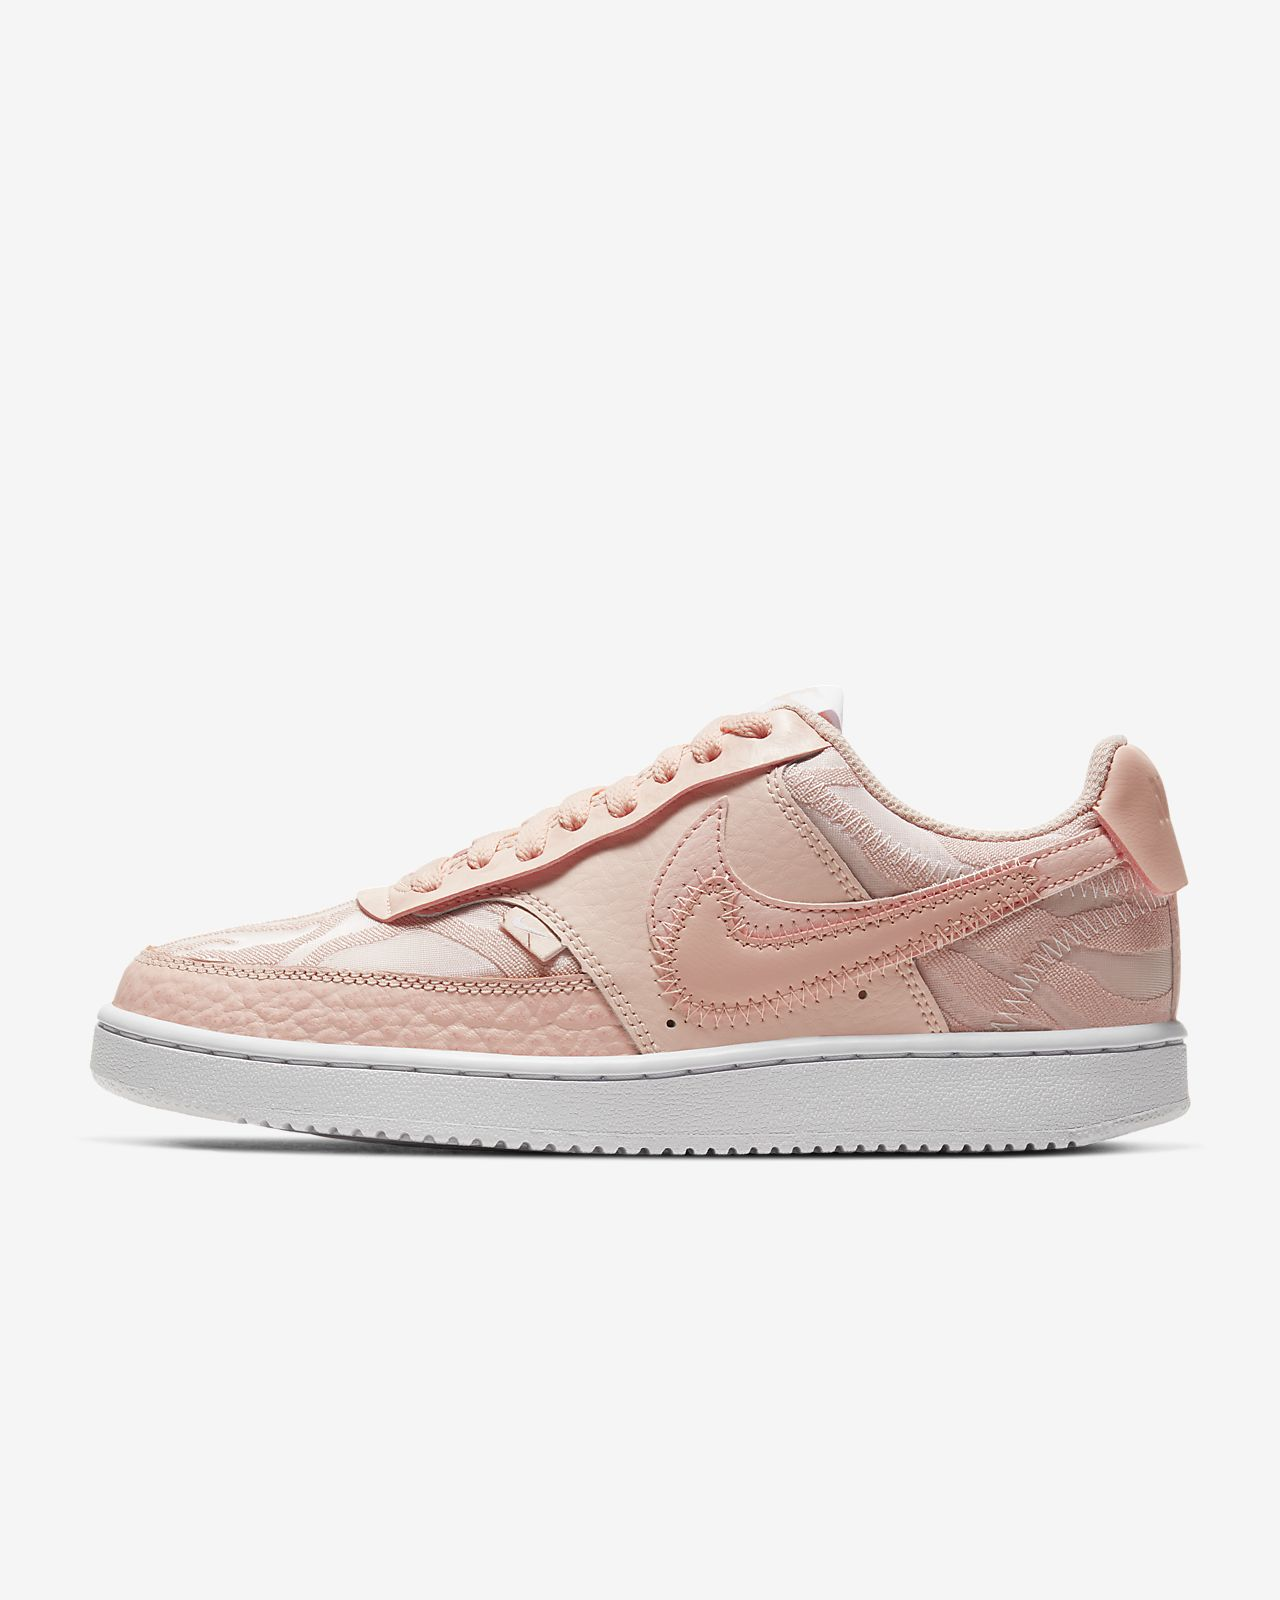 Nike Court Vision Low Premium Women's Shoe